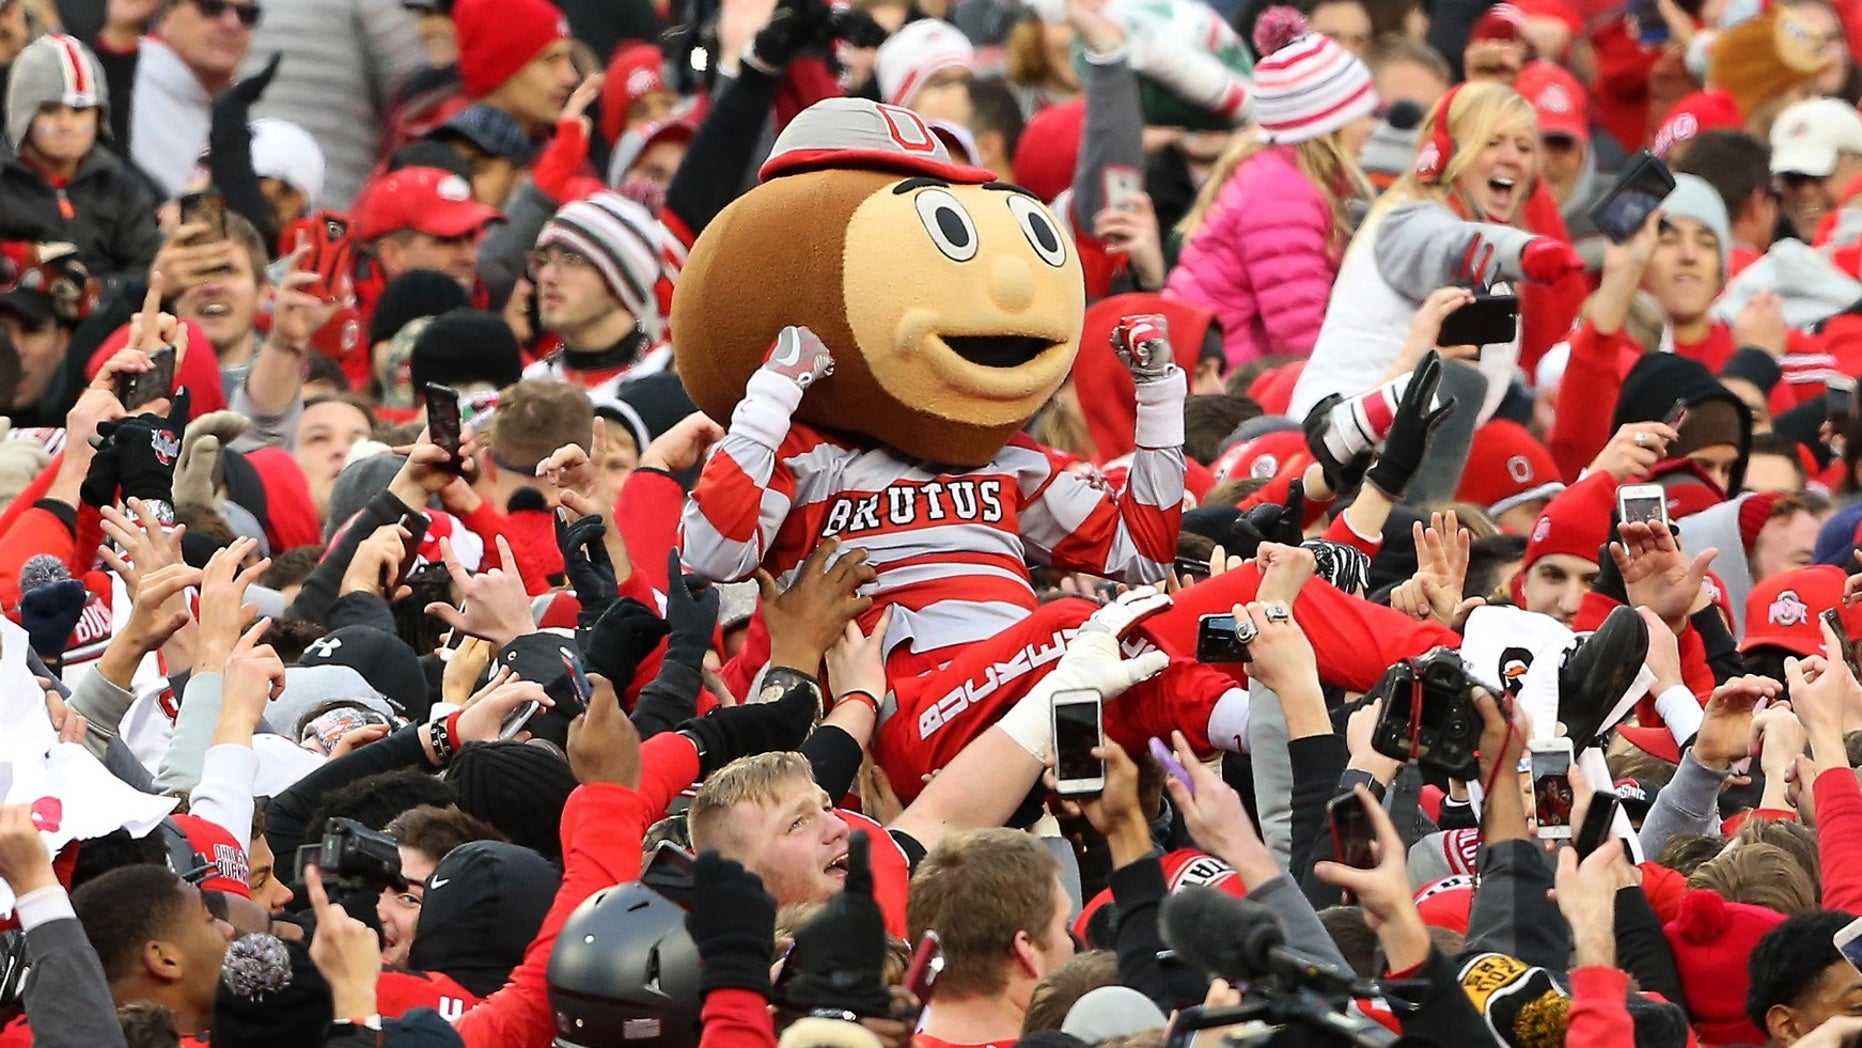 Ohio State fans in November 2016.